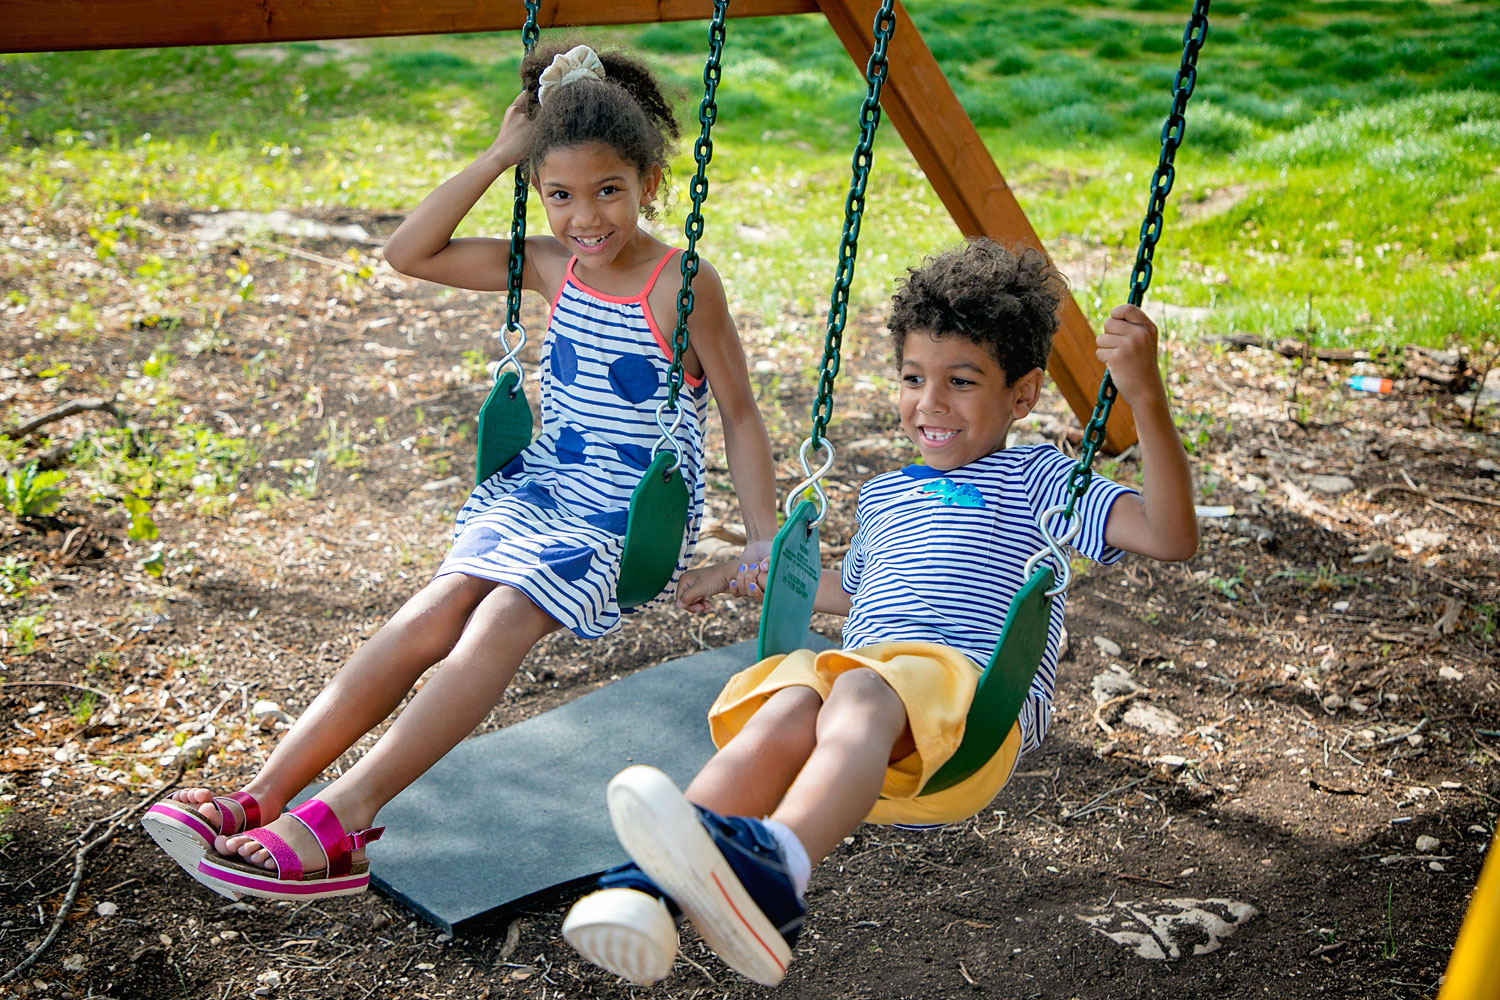 Biracial siblings holding hands on a swing wearing Stitch Fix kids clothes.